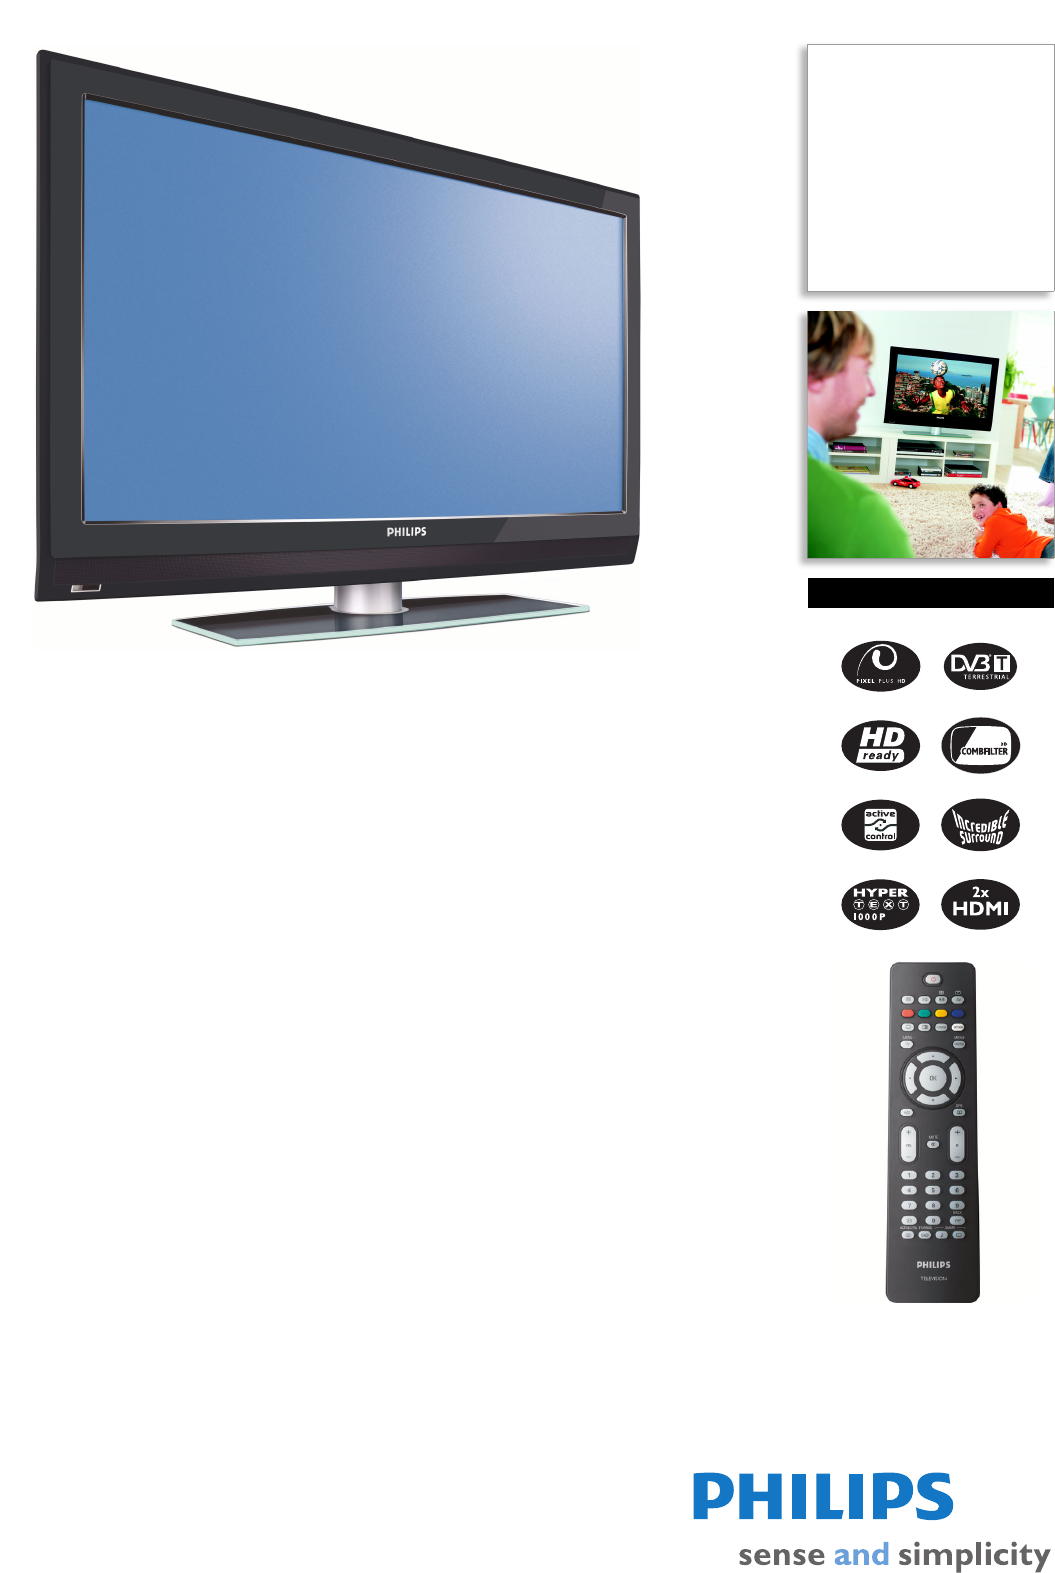 philips flat panel television 42pfl5522d 05 user guide rh tv manualsonline com Philips HDTV Manual Philips Instruction Manuals